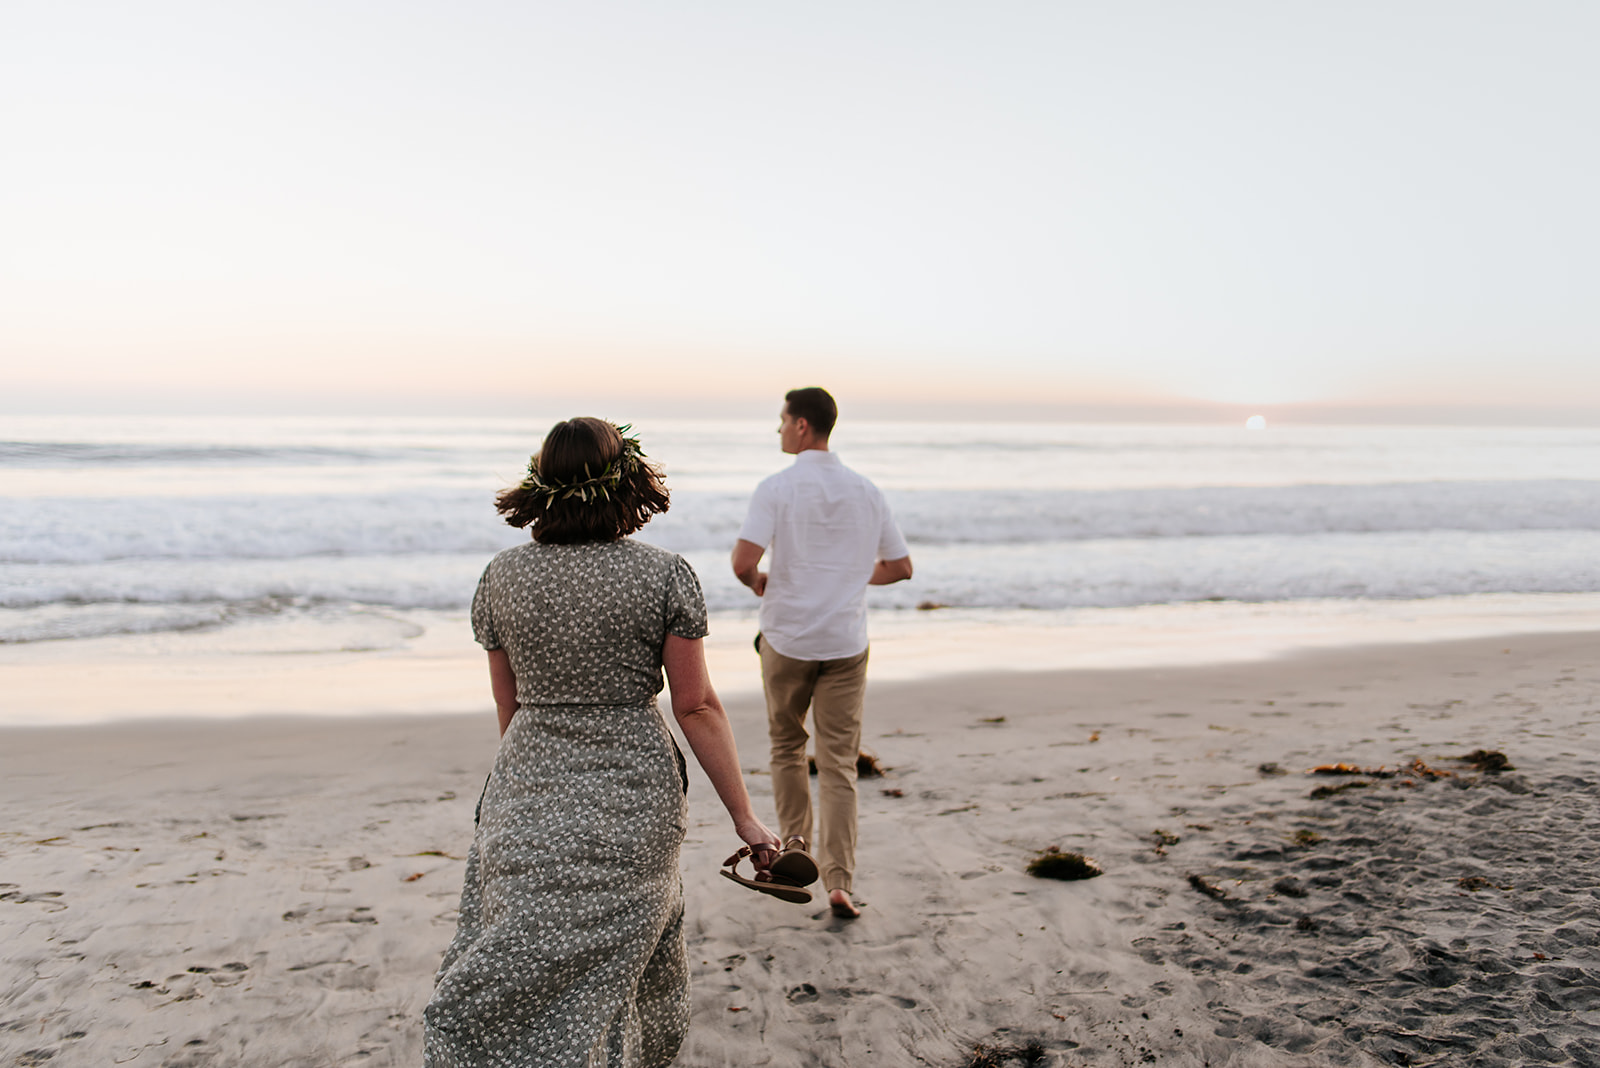 SoCal_Standard_-_San_Diego_Engagement_Photographer_-_Modern_Candid_Destination_Photographer_-_Engagement_Session_at_Torrey_Pines_San_Diego_California_-_Grace_and_Robert-204.jpg